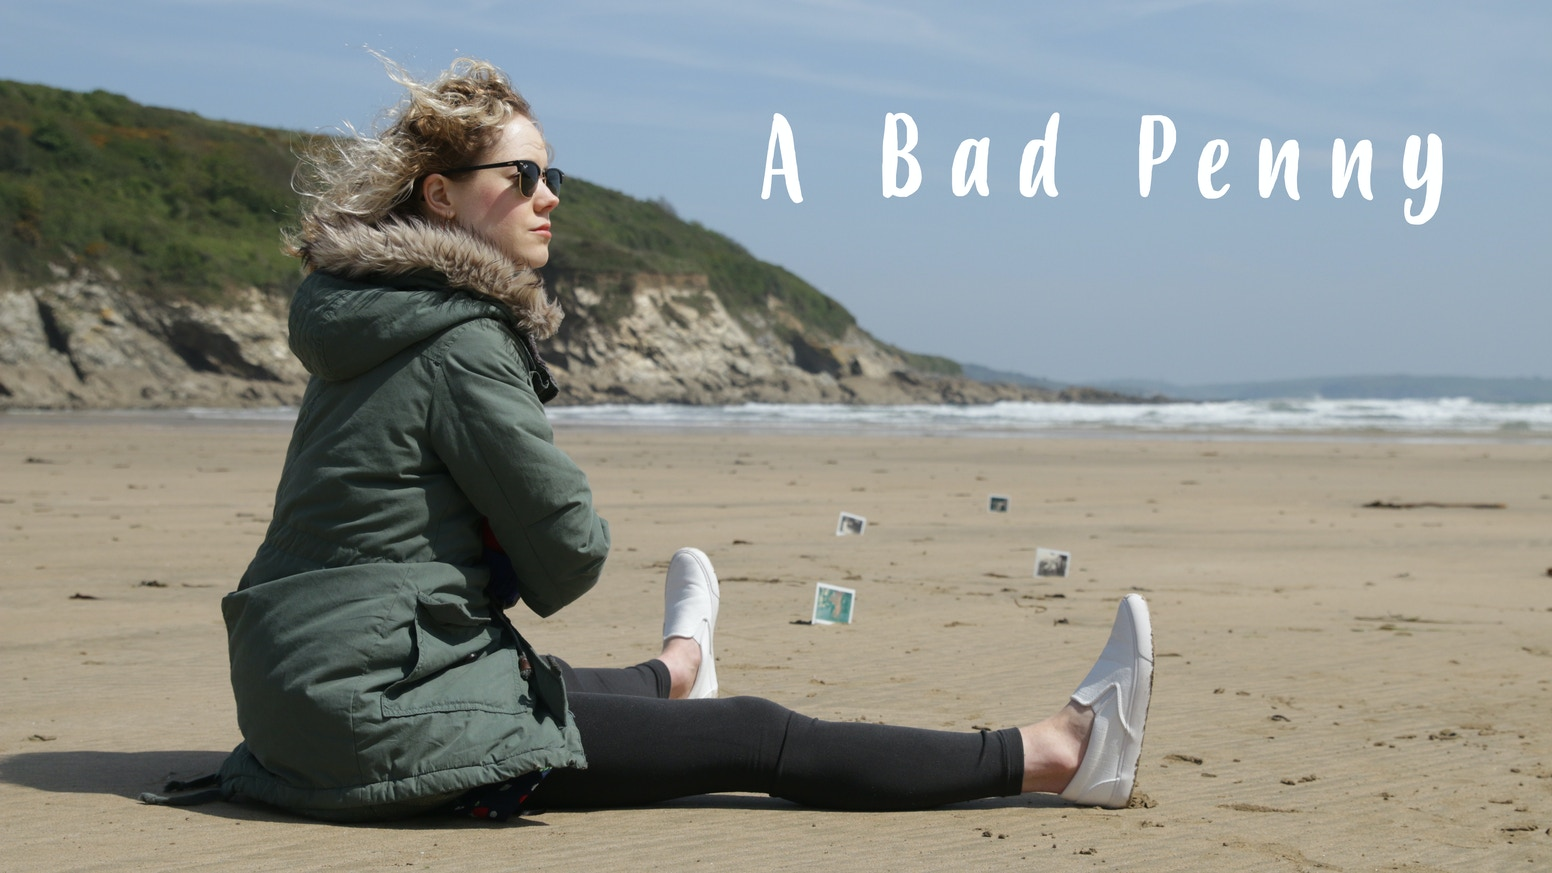 'A Bad Penny' is an LGBT comedy-drama feature film about a car park attendant dealing with the aftermath of a break up.